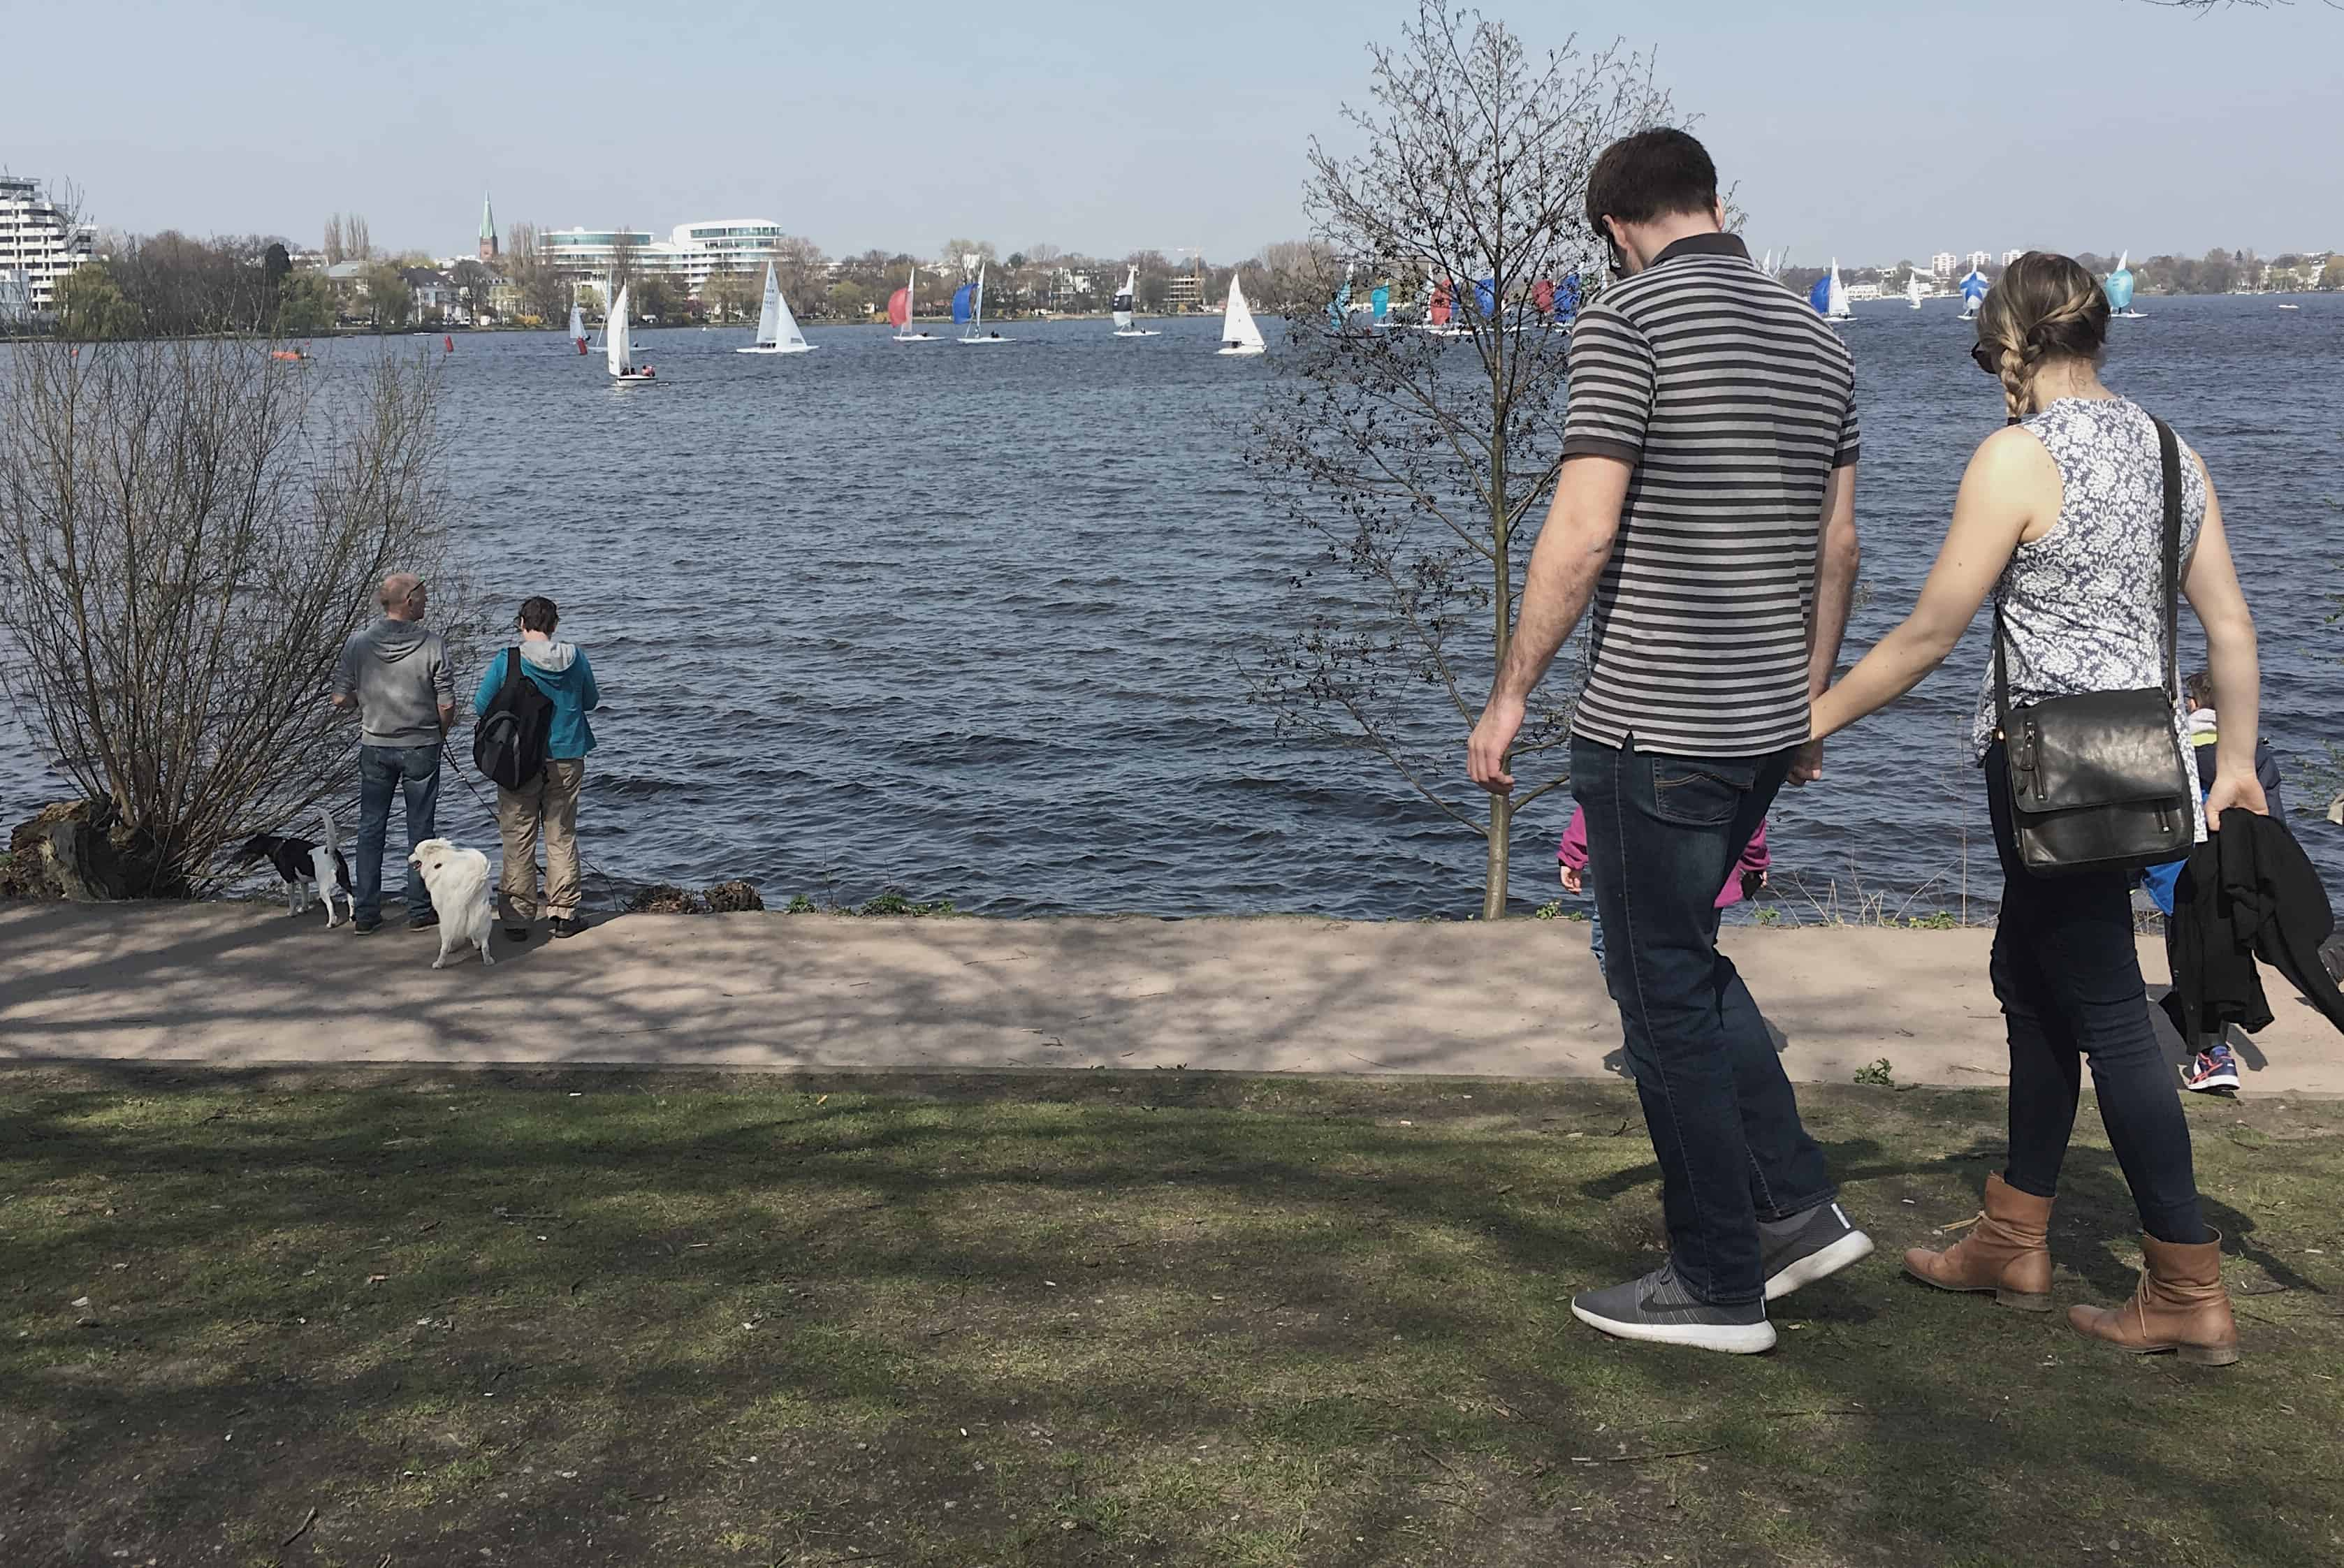 The banks of Außenalster (Outer Alster Lake) on a nice day